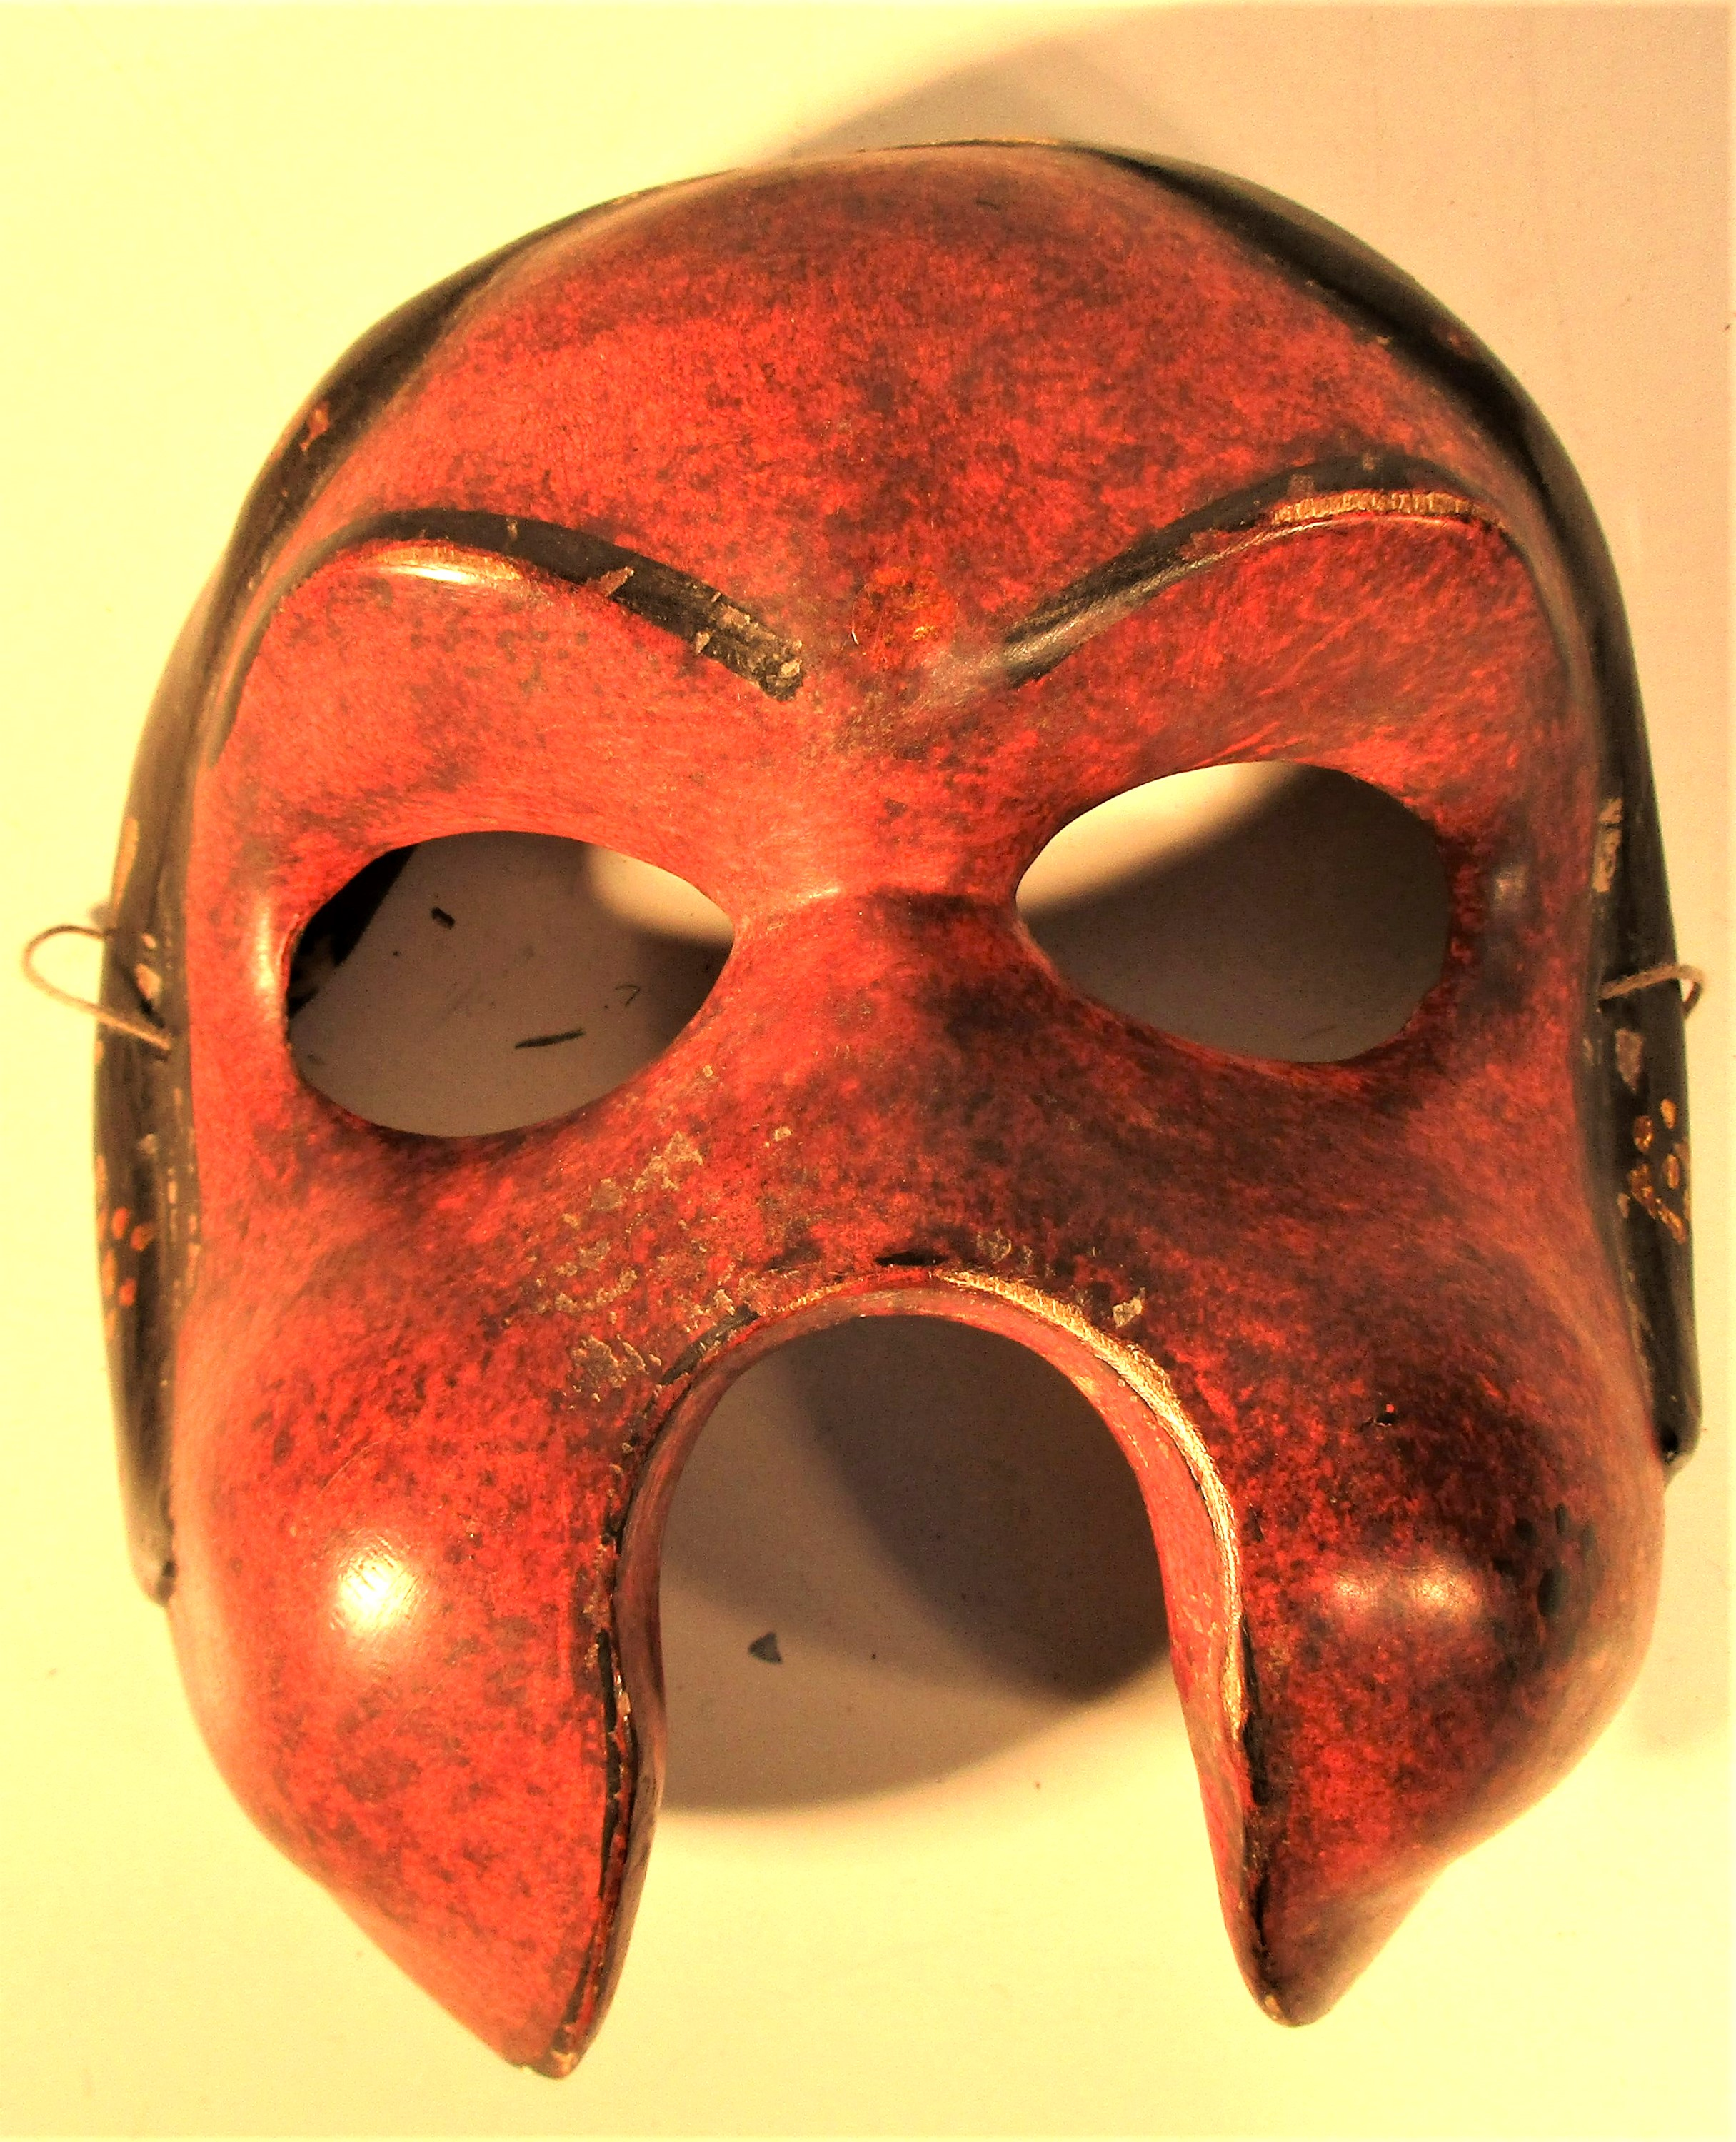 Balinese Topeng 1/2 mask painted red. 15 x 15cm. Mid 20th c.